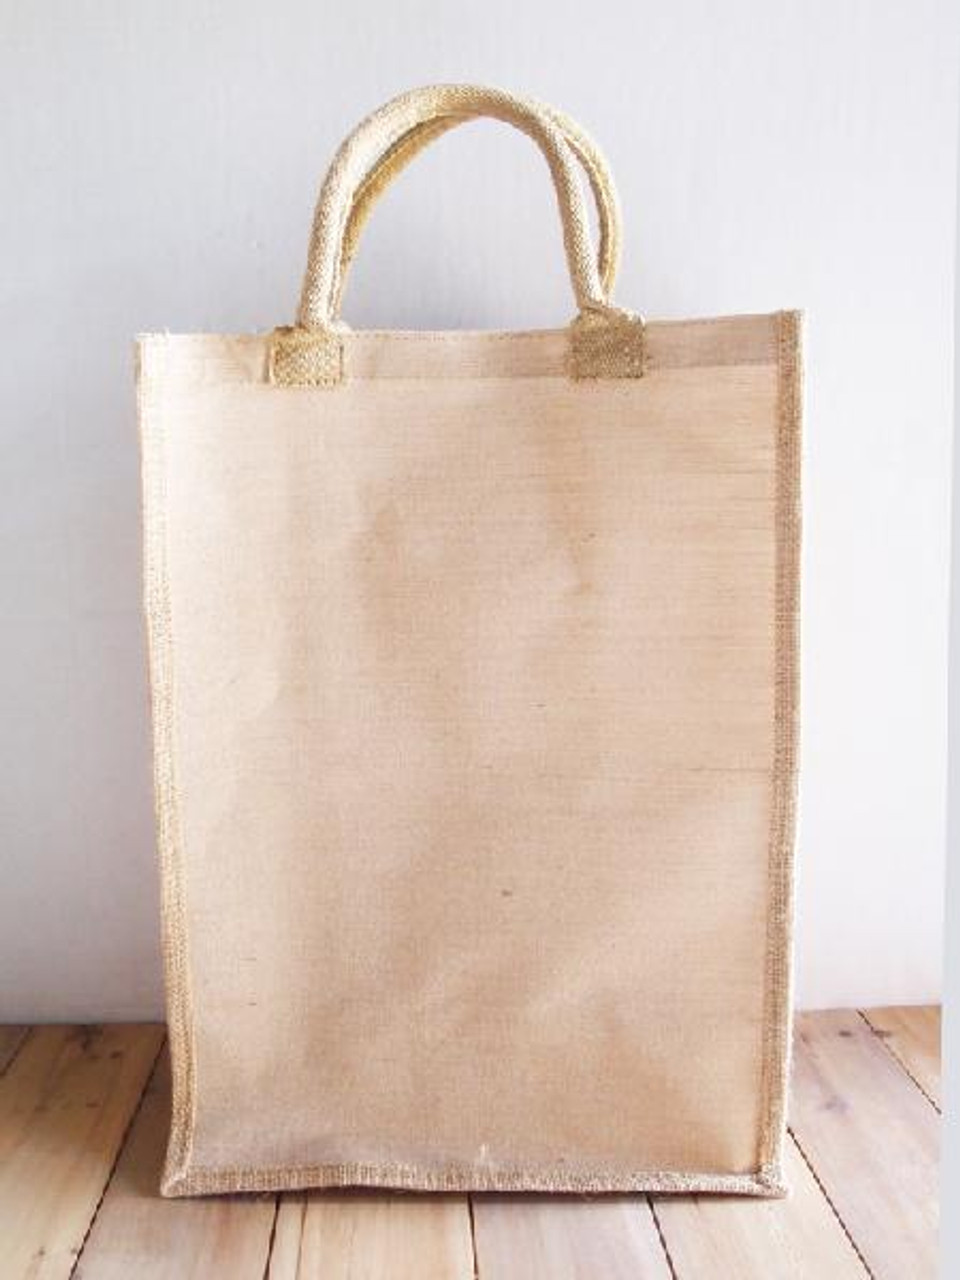 """Jute Blend Tall Tote 13"""" W x 18"""" H x 8"""" Gusset B909-21, Wholesale Tote Bags 